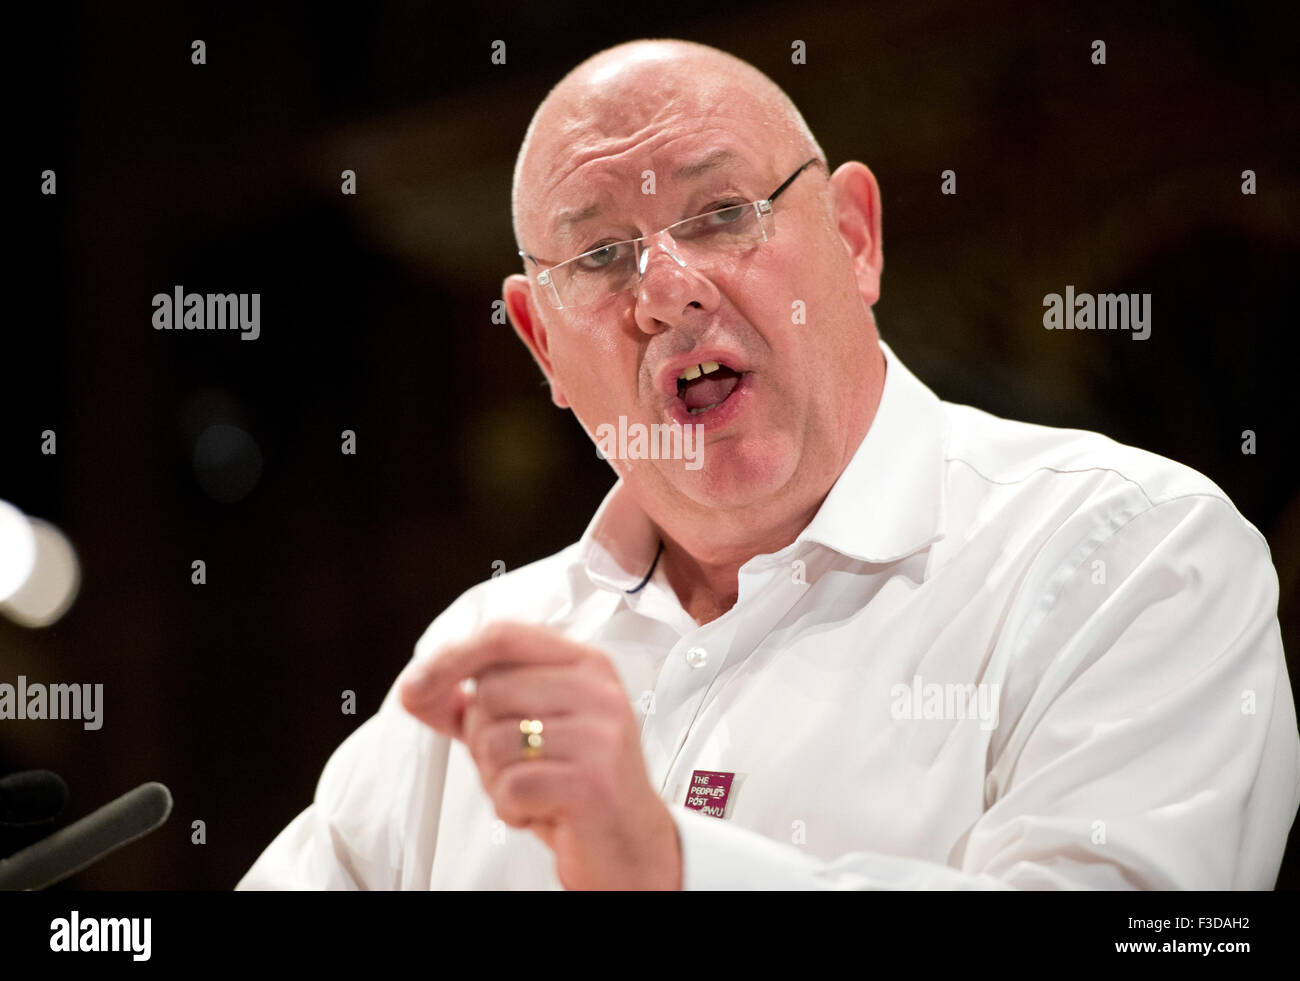 Manchester, UK. 5th October 2015. Dave Ward, General Secretary of the Communication Workers Union (CWU), speaks - Stock Image